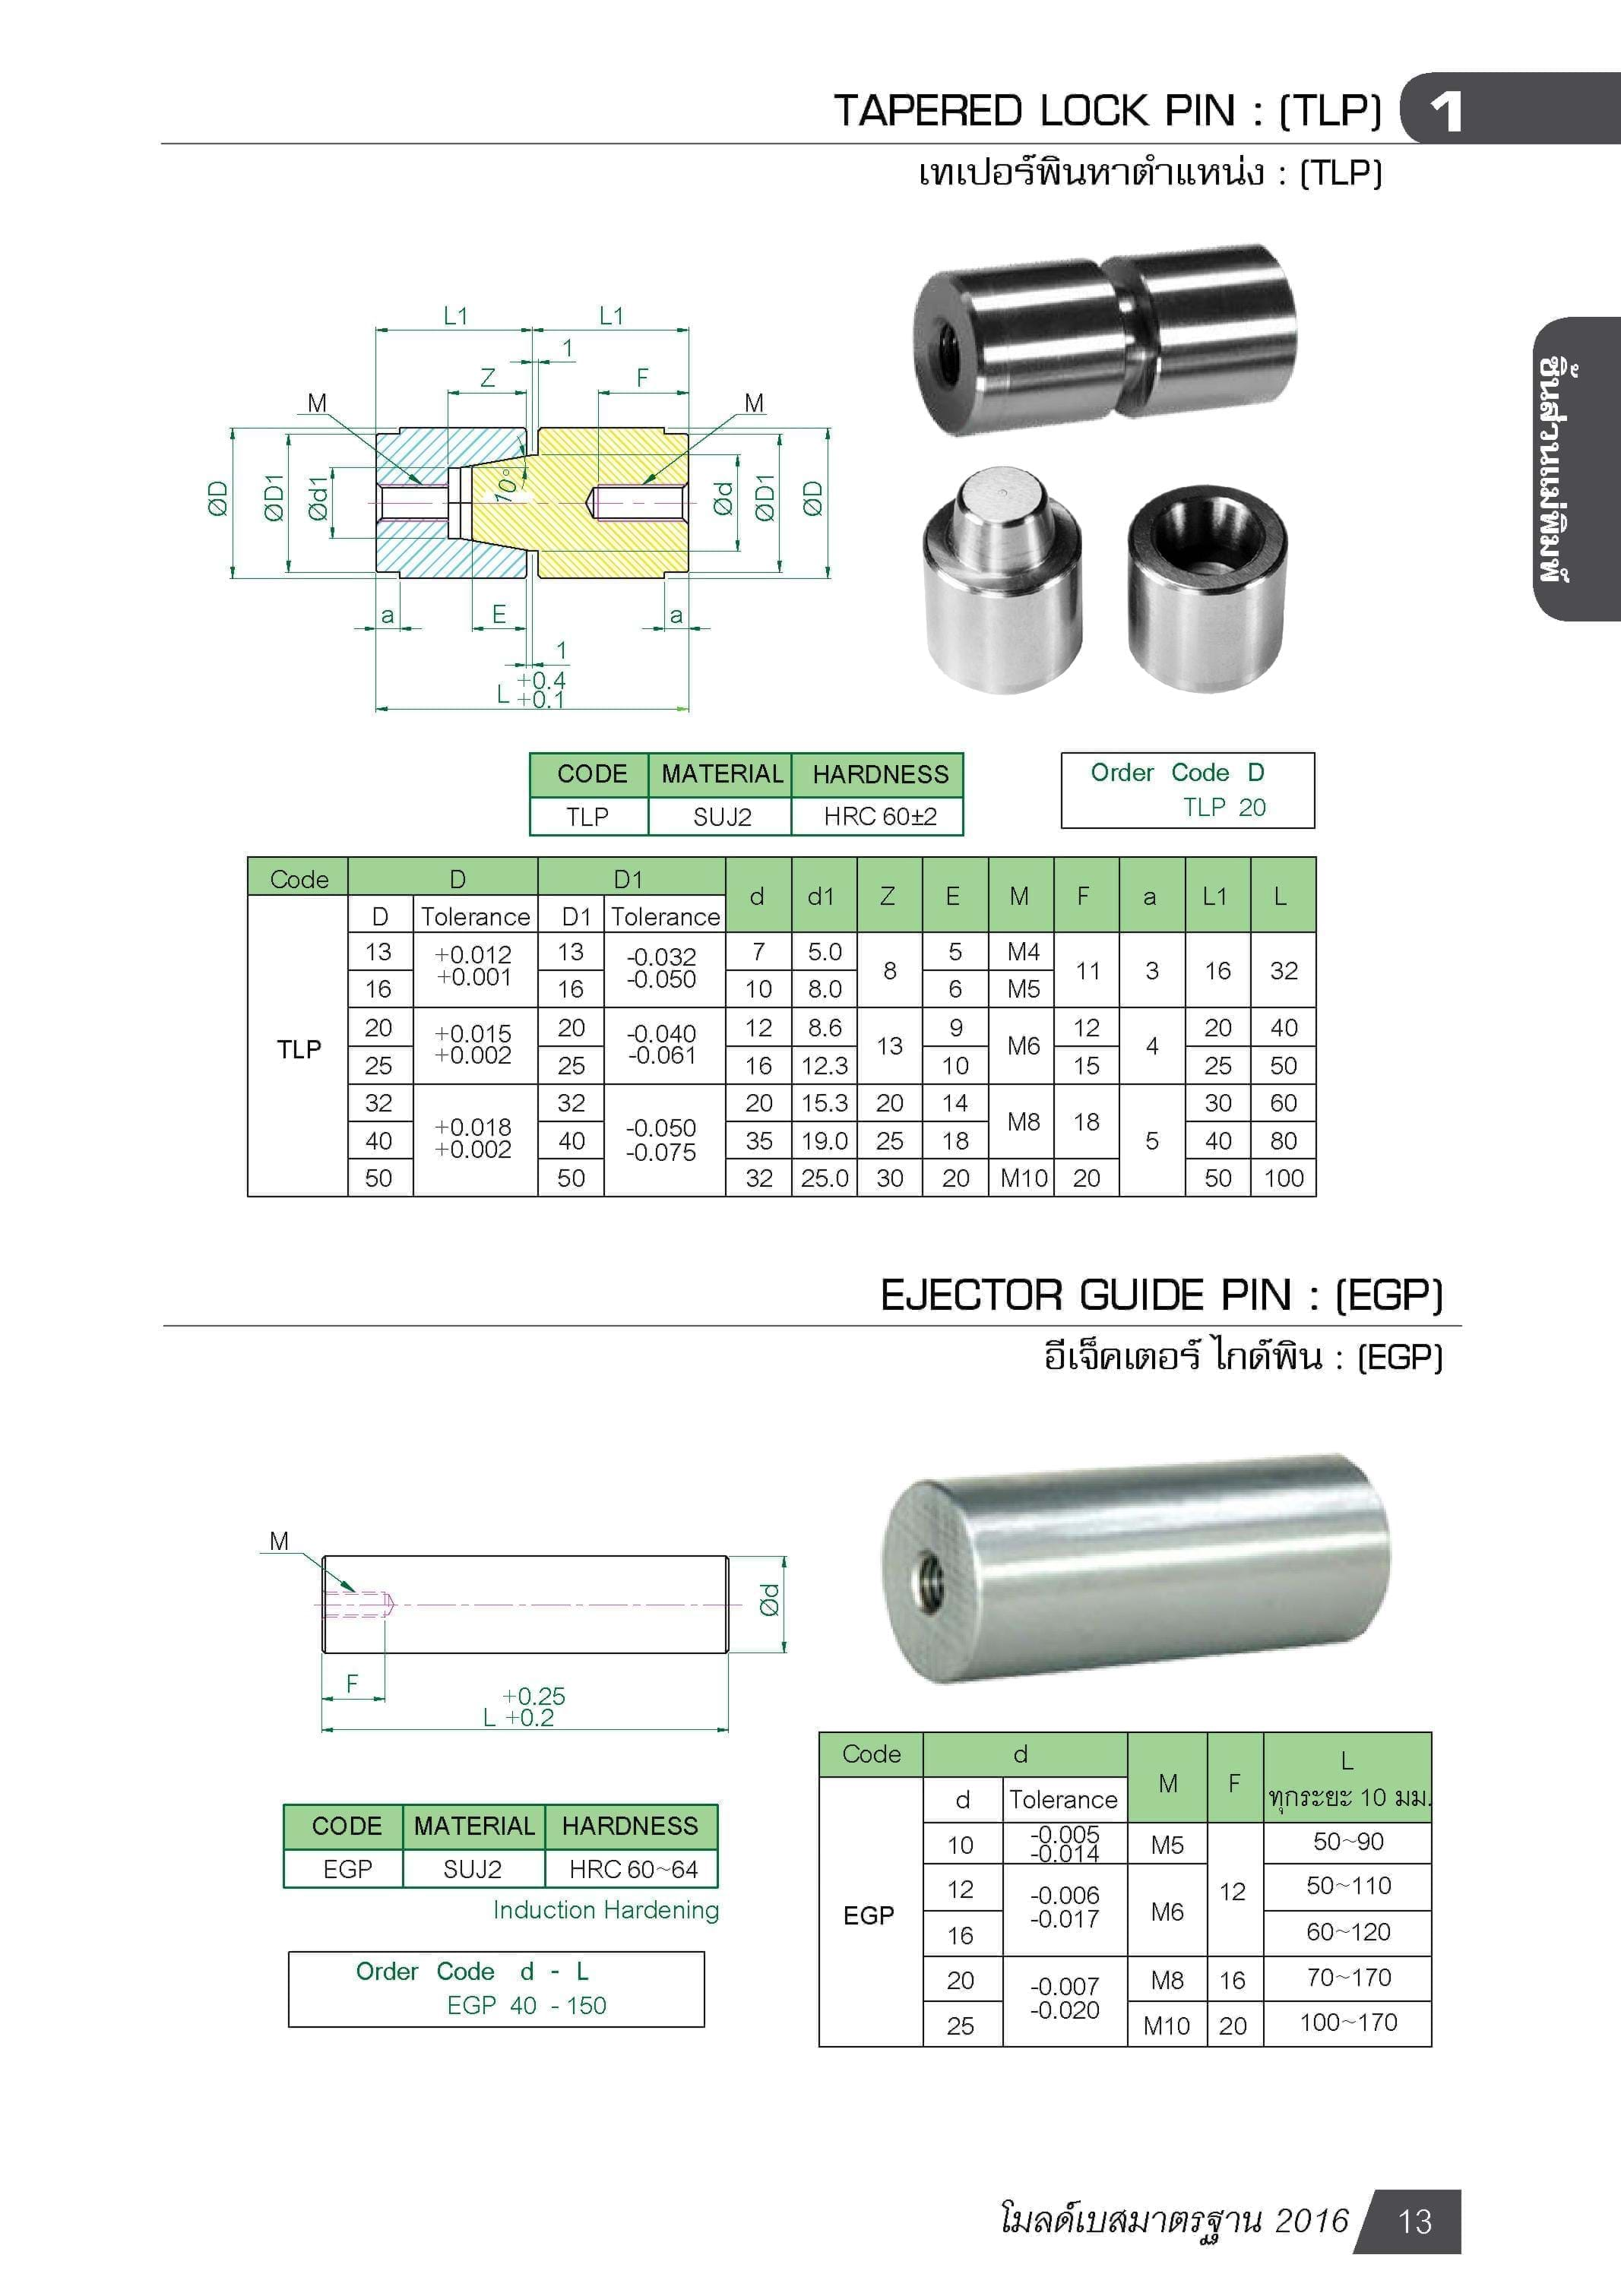 EJECTOR GUIDE PIN : (EGP) MB01302